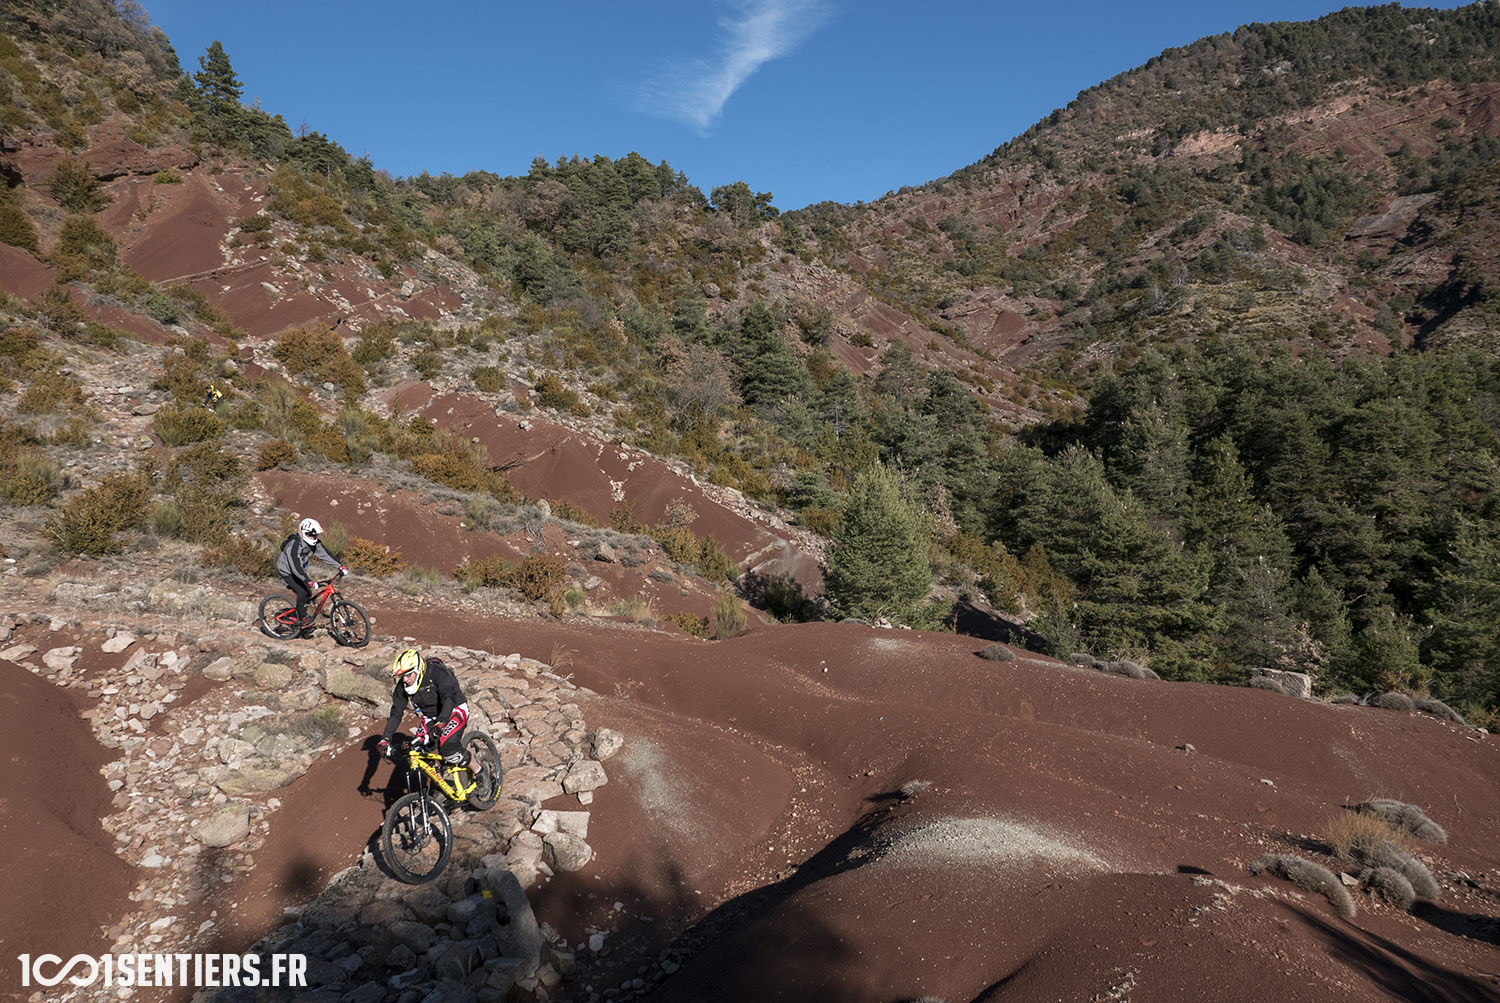 1001sentiers-session-enduro-alpes-maritimes-vtt-p1100292